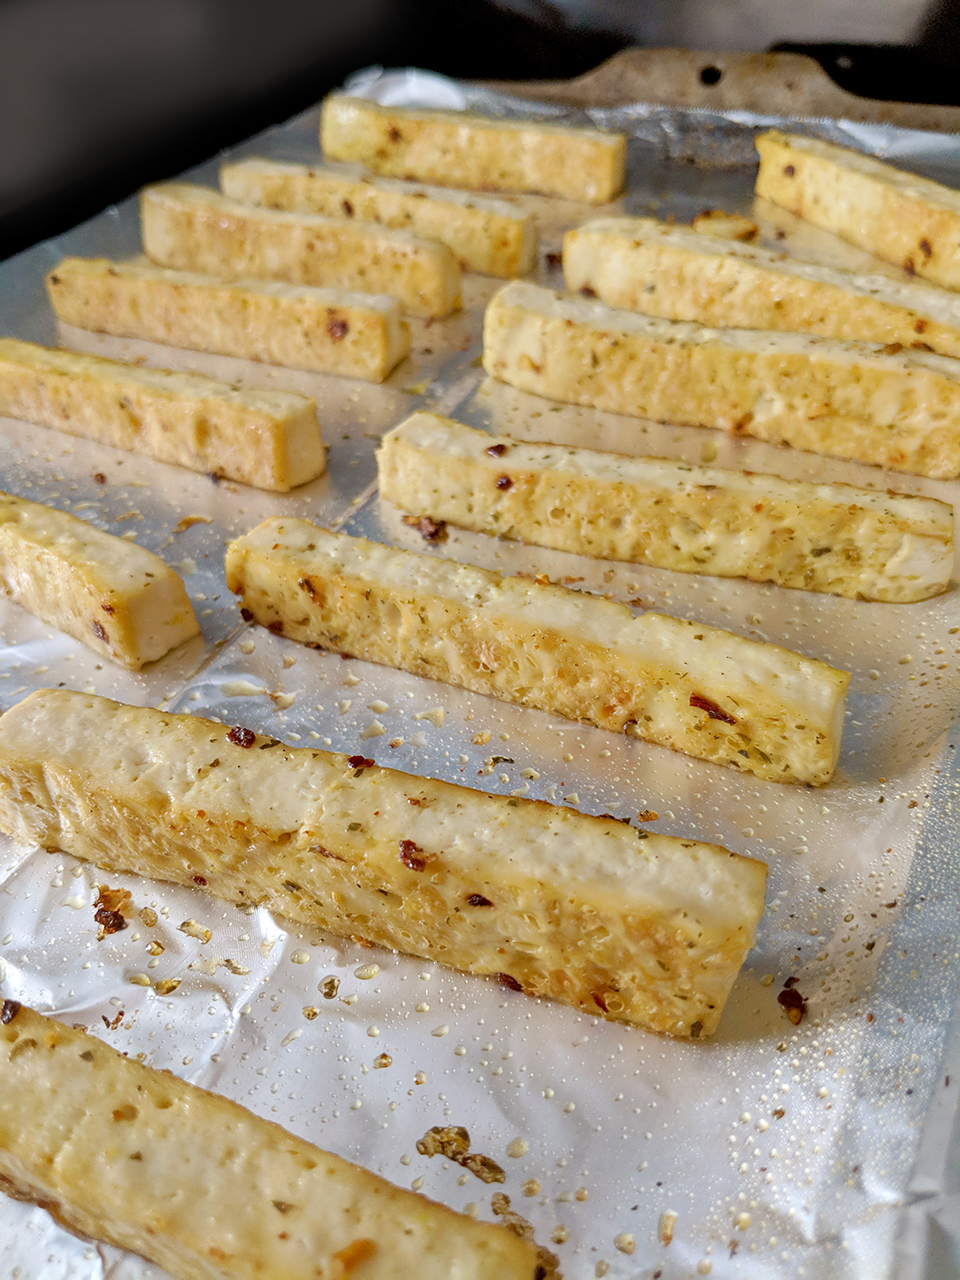 Baked strips of tofu on an aluminum tray.